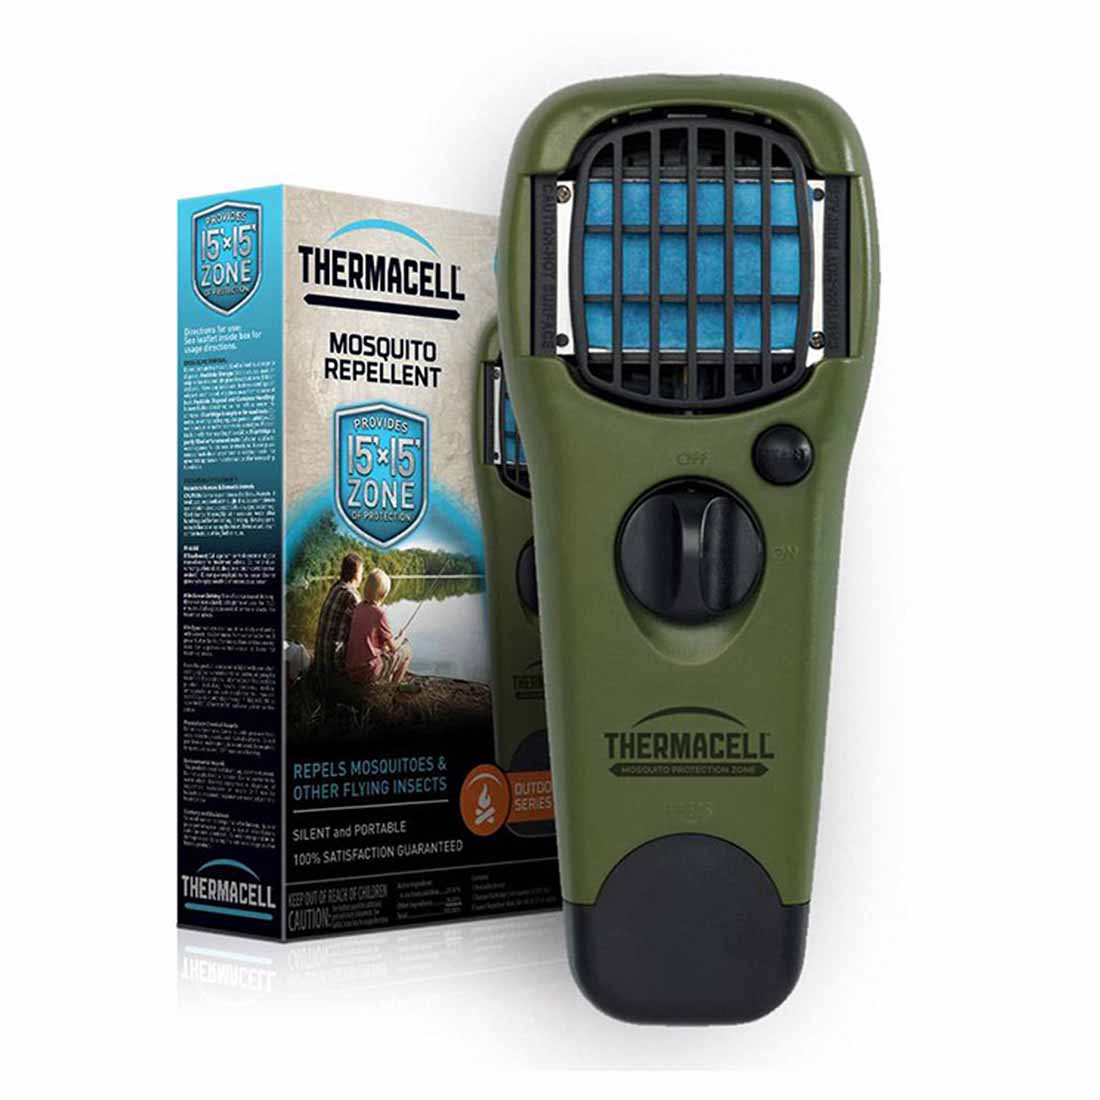 Thermacell Portable Mosquito Repeller, Olive_3.jpg